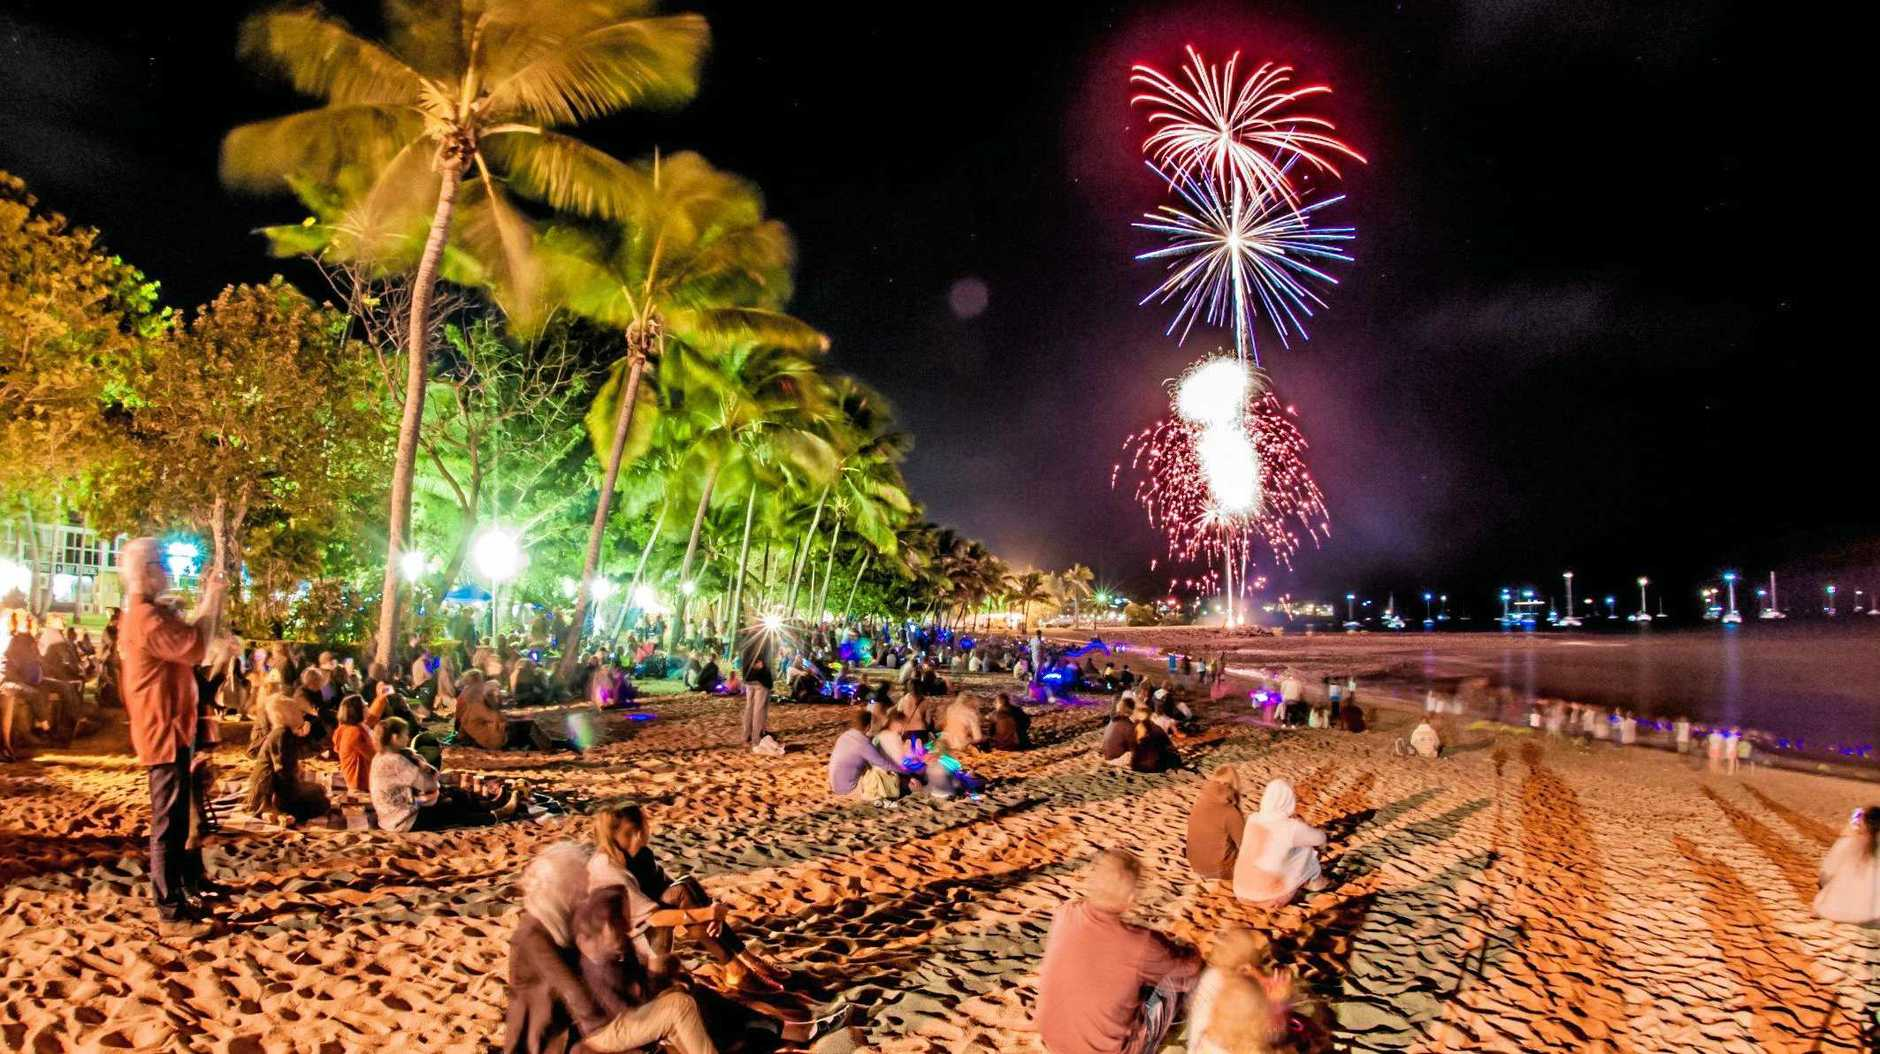 STARTING WITH A BANG: Don't miss the Whitsunday Coast Airport Fireworks by the Foreshore.